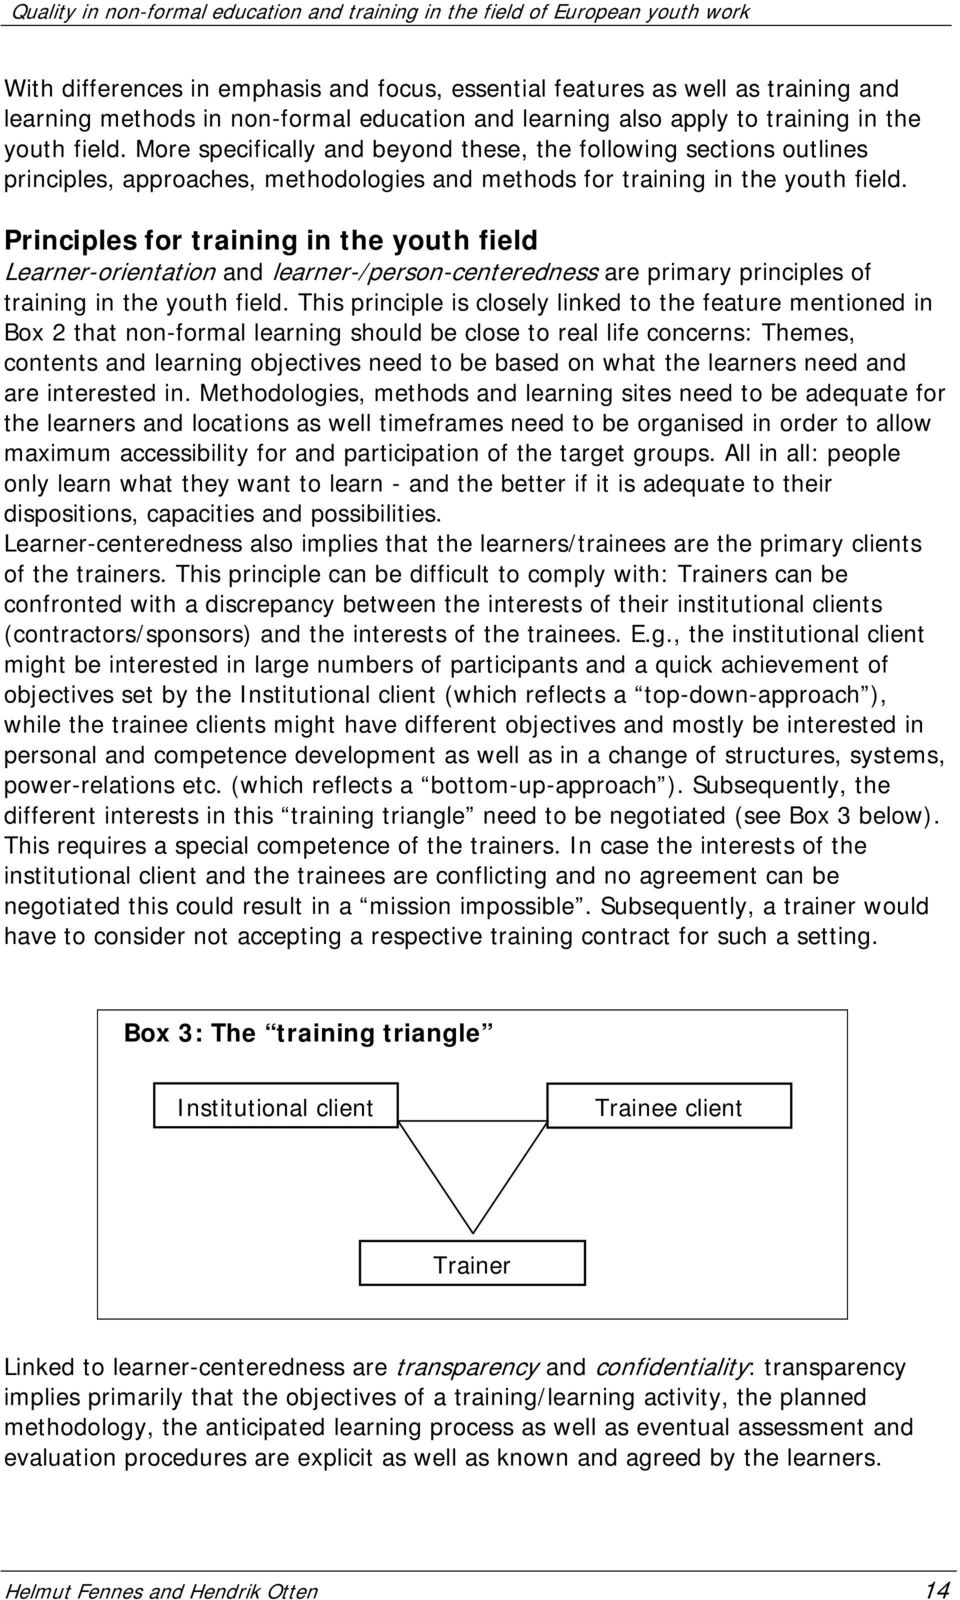 Principles for training in the youth field Learner-orientation and learner-/person-centeredness are primary principles of training in the youth field.